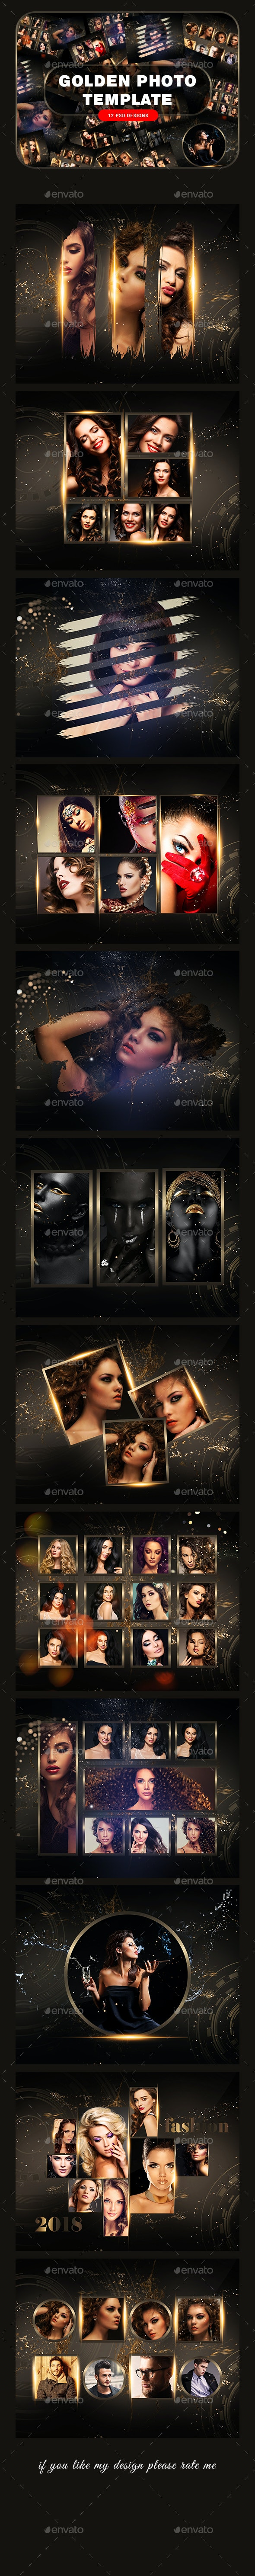 Golden Photo Frame Template - Photo Templates Graphics